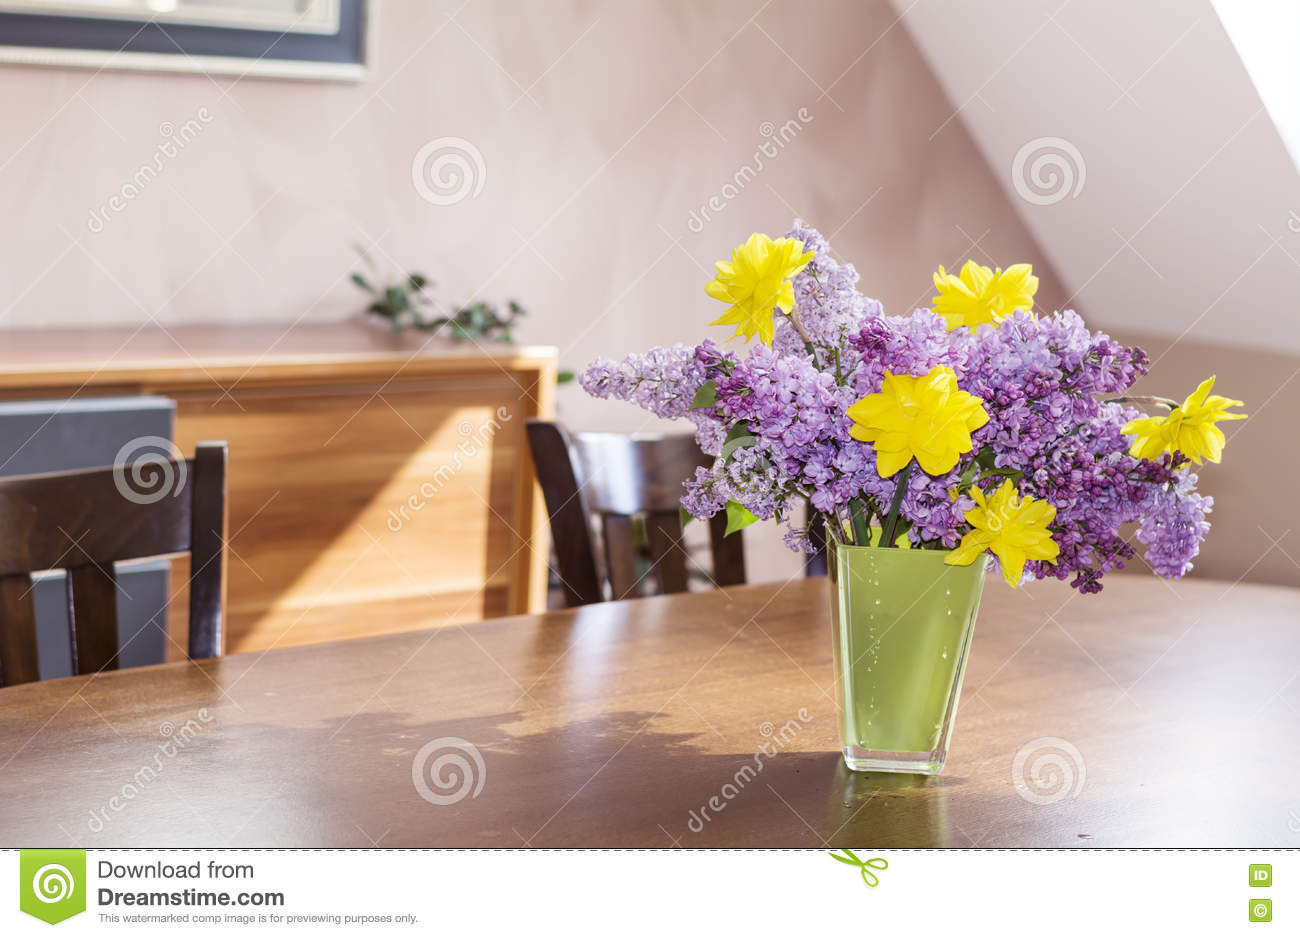 floor vase stands of 10 best of wooden flower vase stand bogekompresorturkiye com for download yellow narcissus flowers and lilac in a green glass vase a wooden table stock